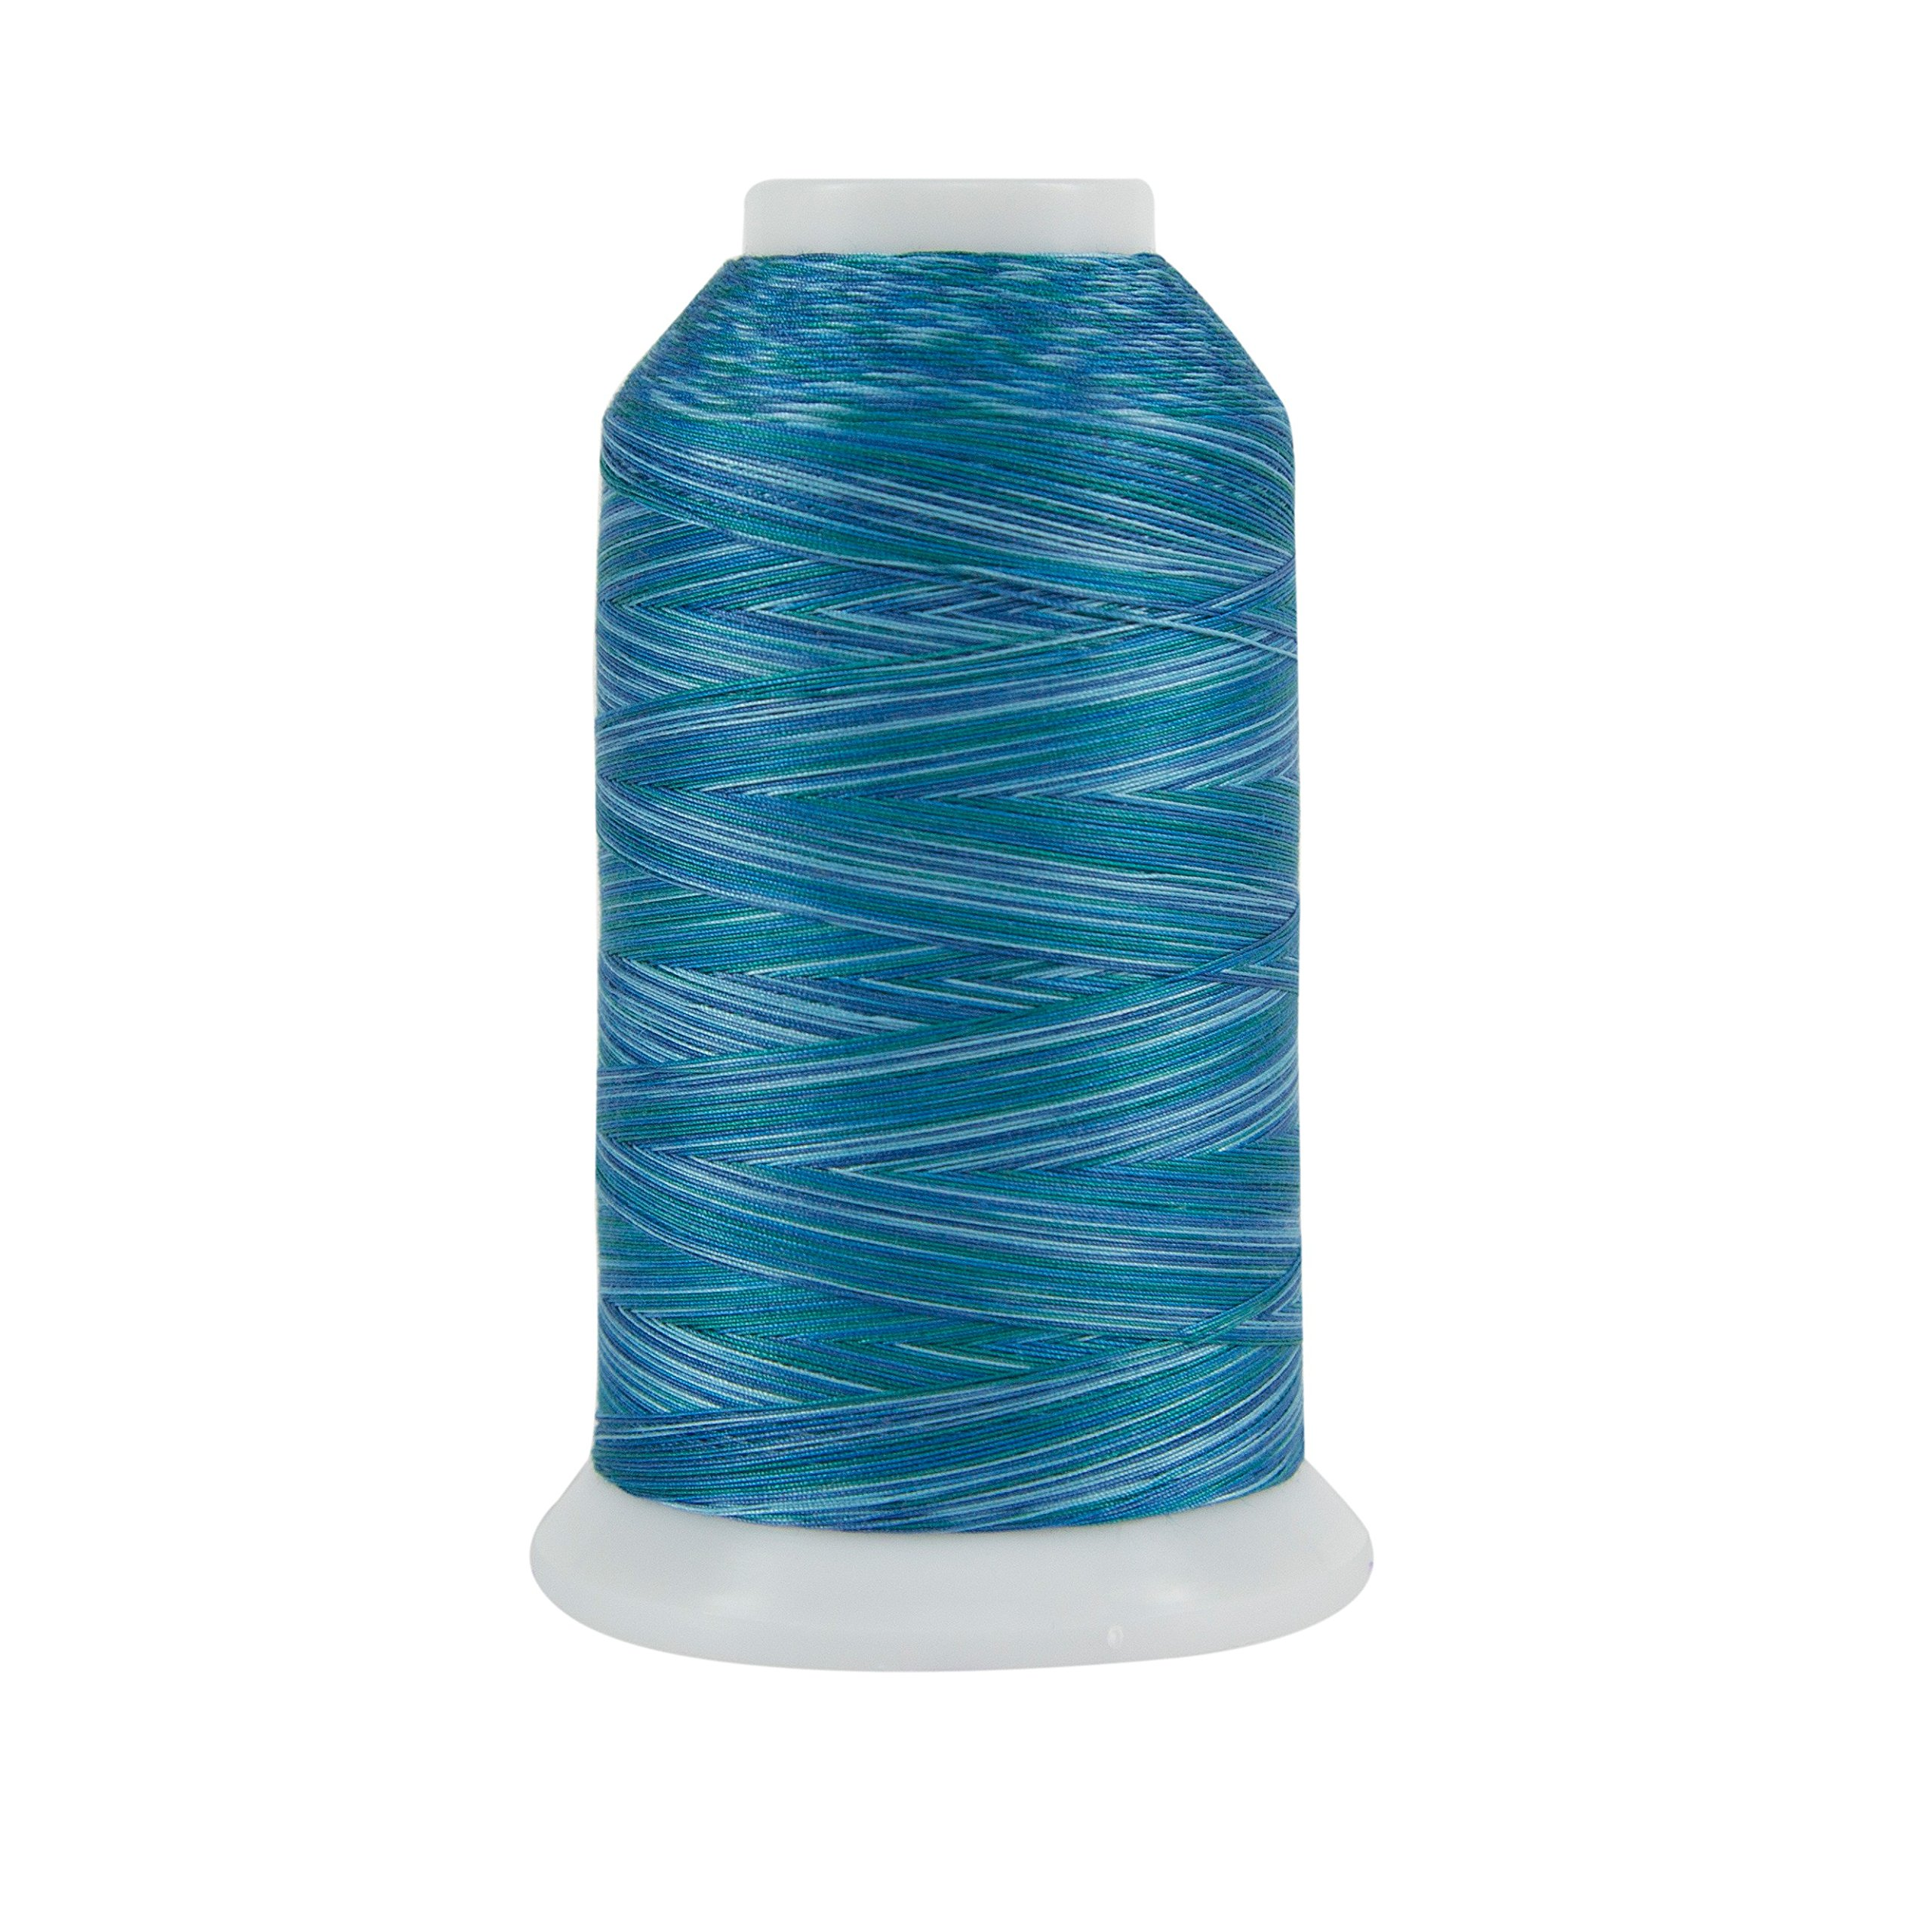 Superior Threads 121029XX930 Thebes 3-Ply 40W King TUT Cotton Quilting Thread, 2000 yd by Superior Threads